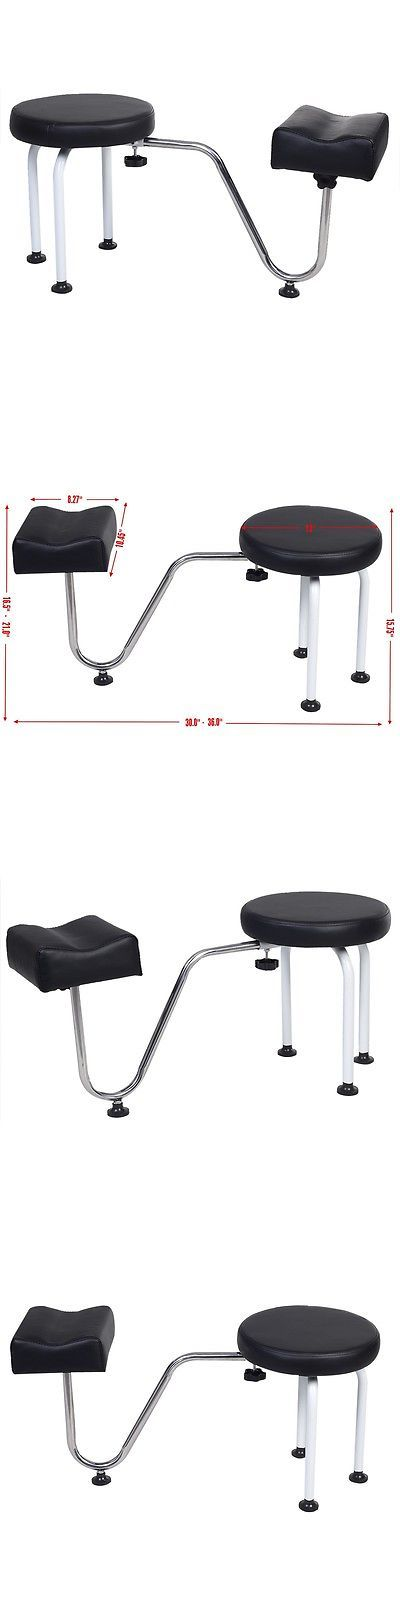 Salon and Spa Supplies: Pedicure Station Chair Manicure Reflexology Spa Salon Equipment W/ Foot Rest New BUY IT NOW ONLY: $58.99